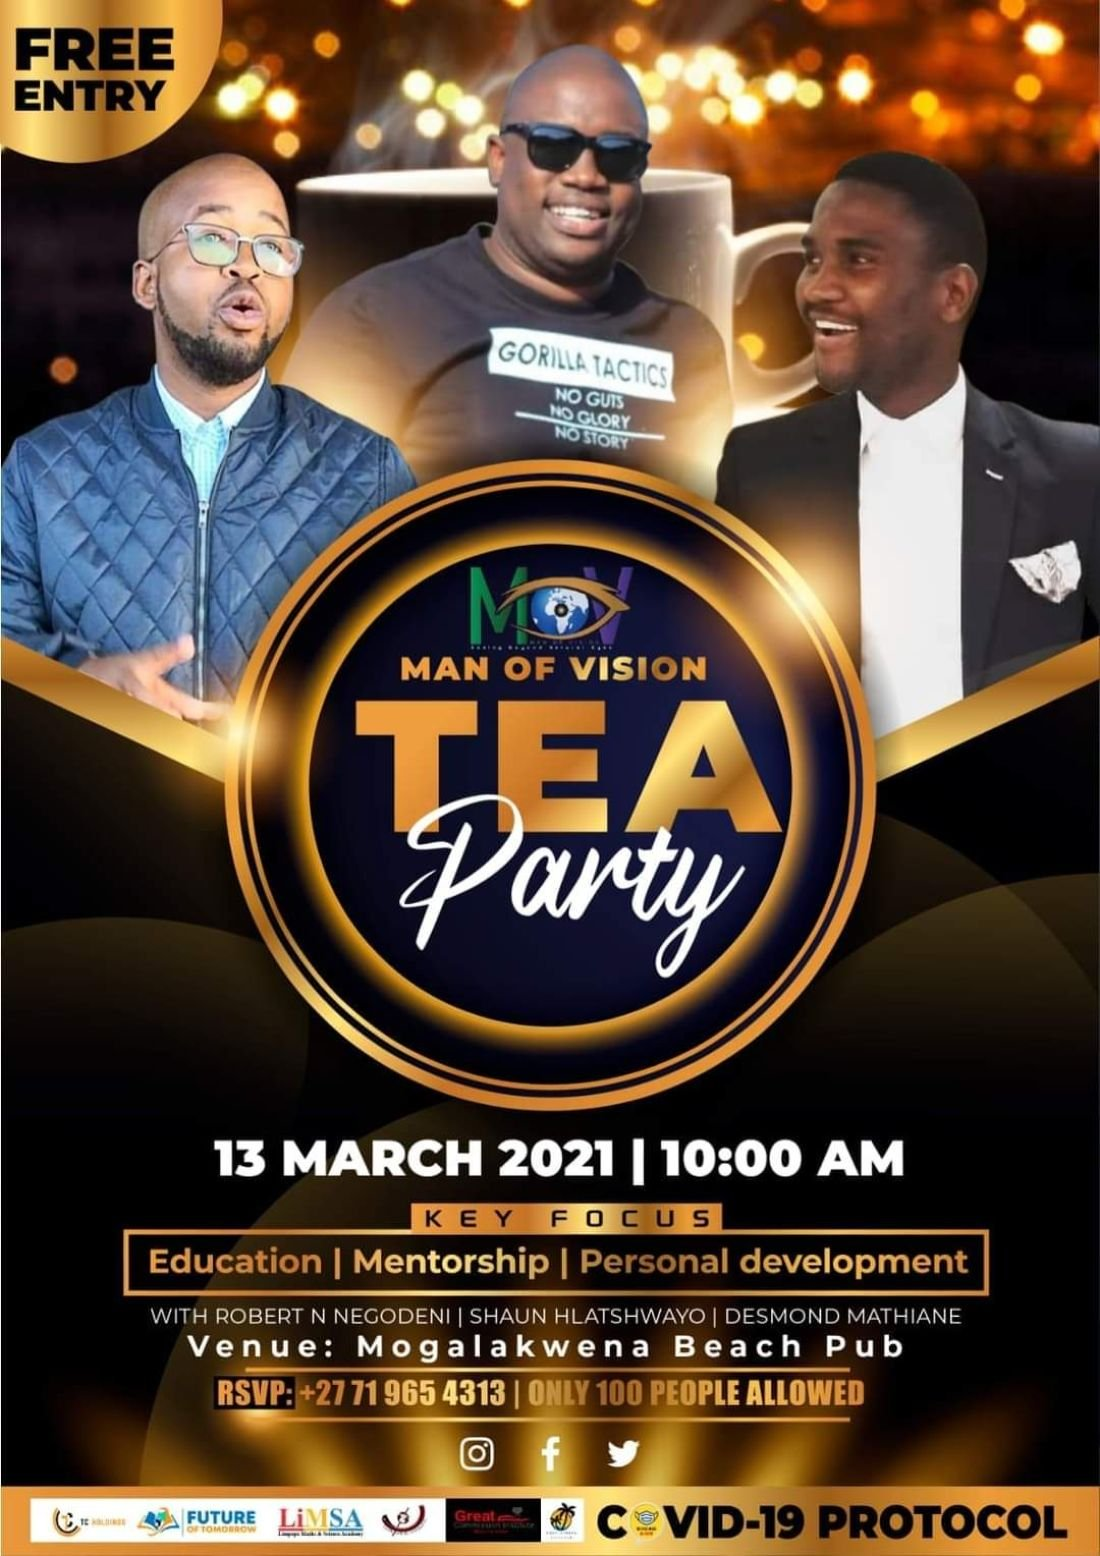 Men of vision tea party | Event in Mokopane | AllEvents.in